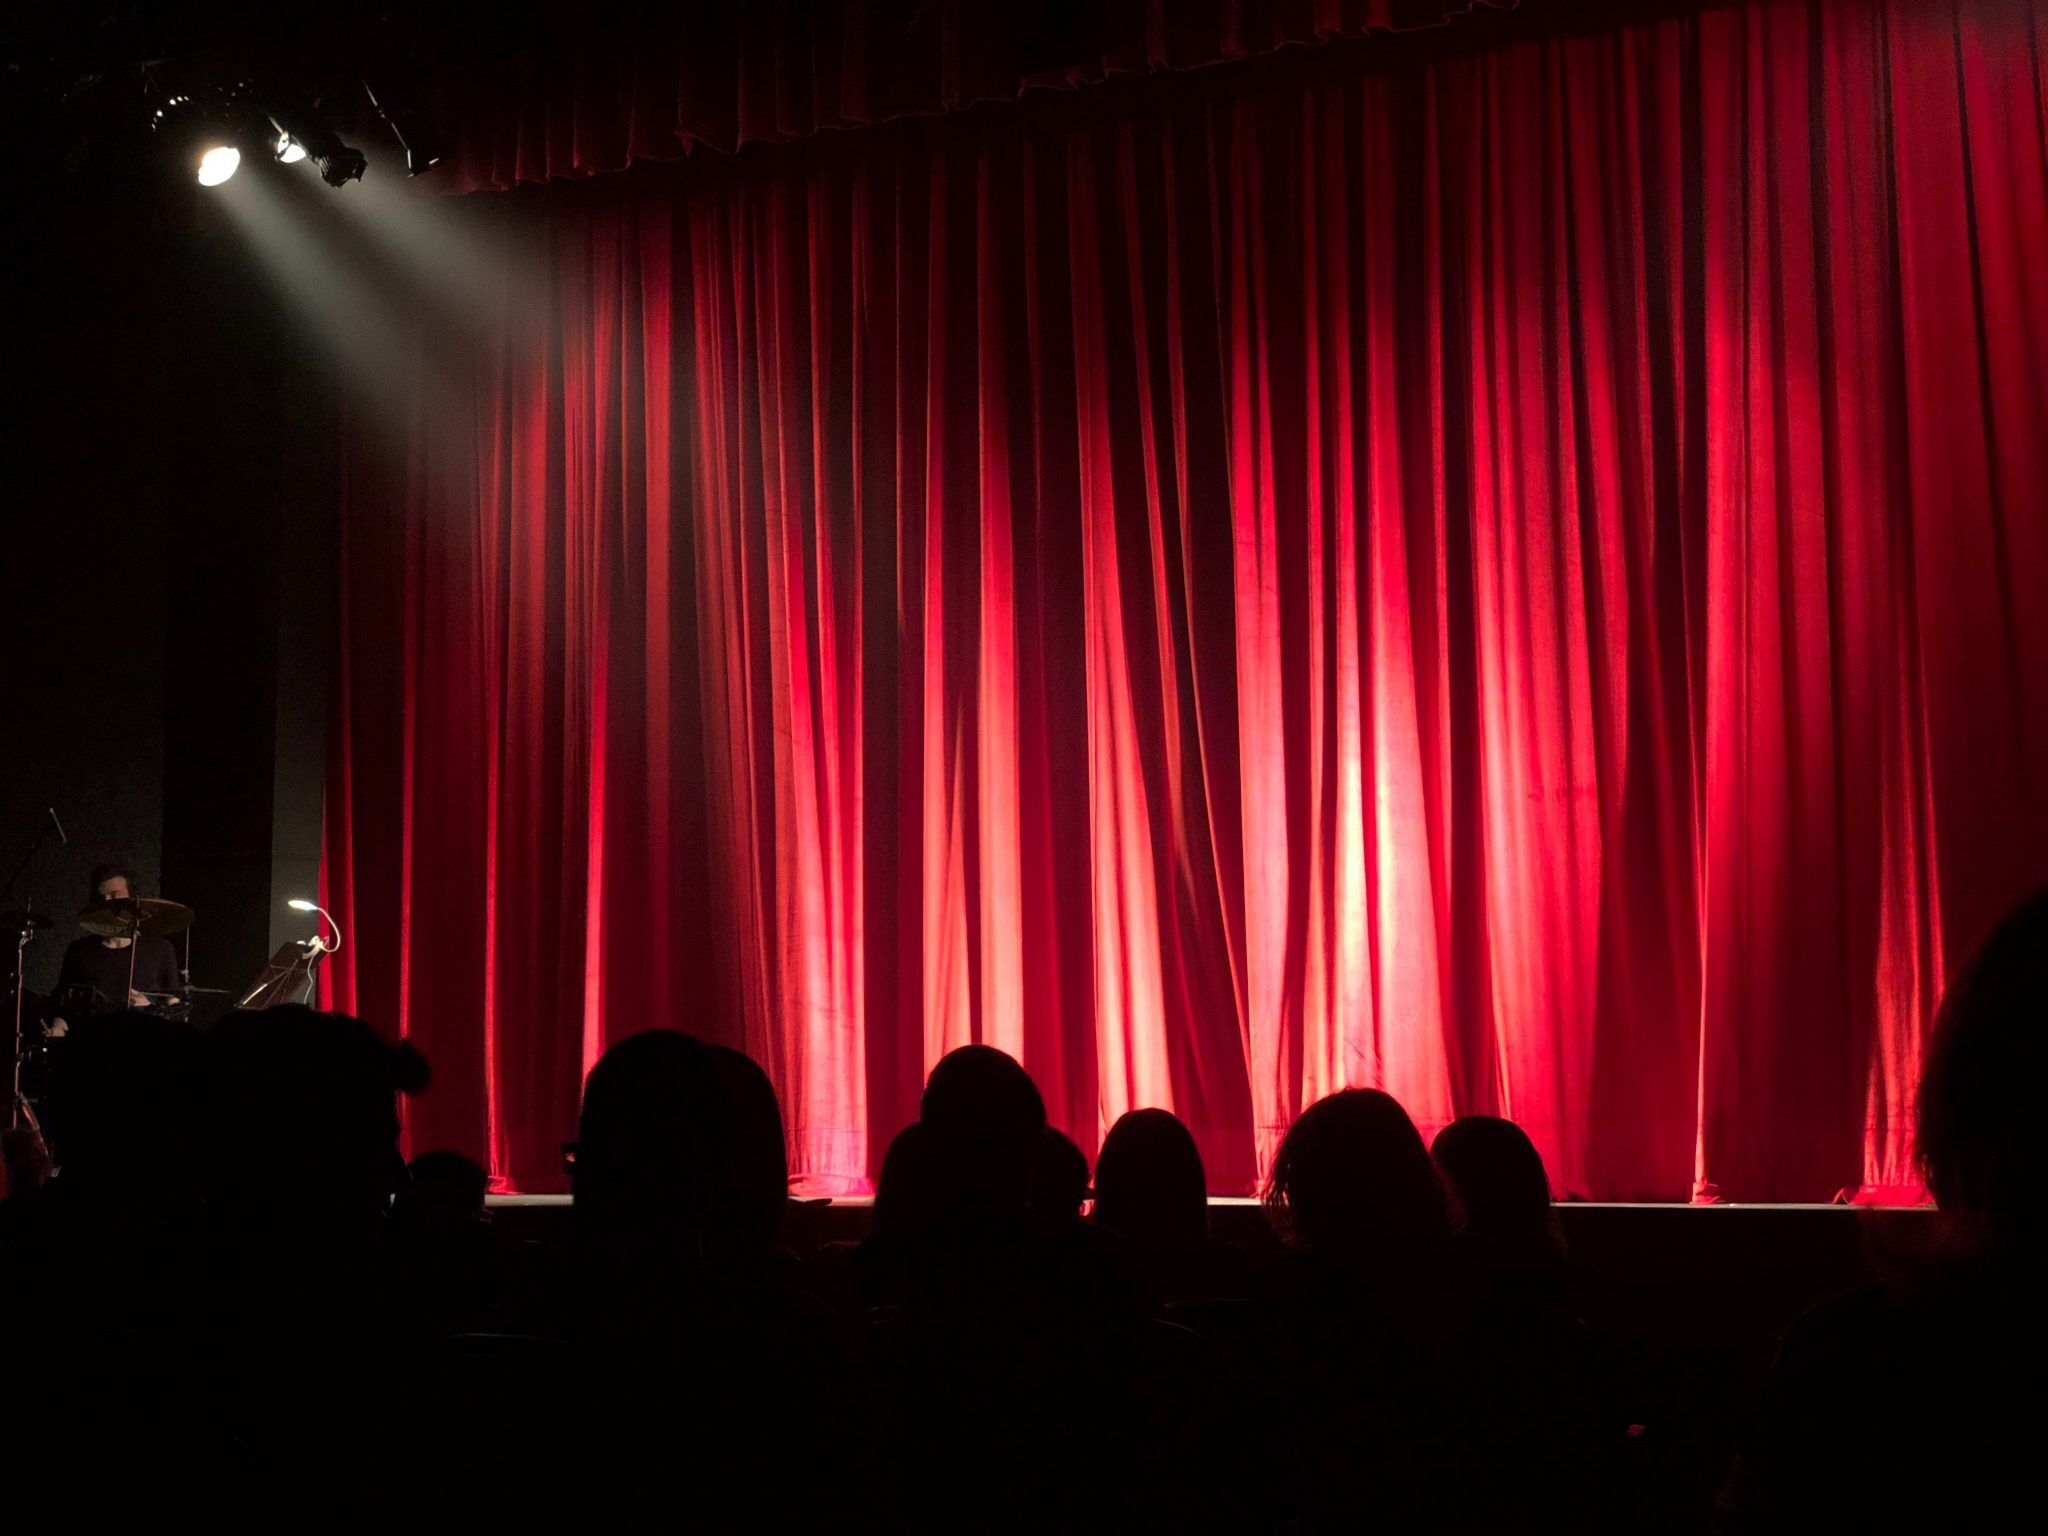 A theatre with an audience in the dark in the foreground and a large red curtain illuminated by stage lights as the focus.